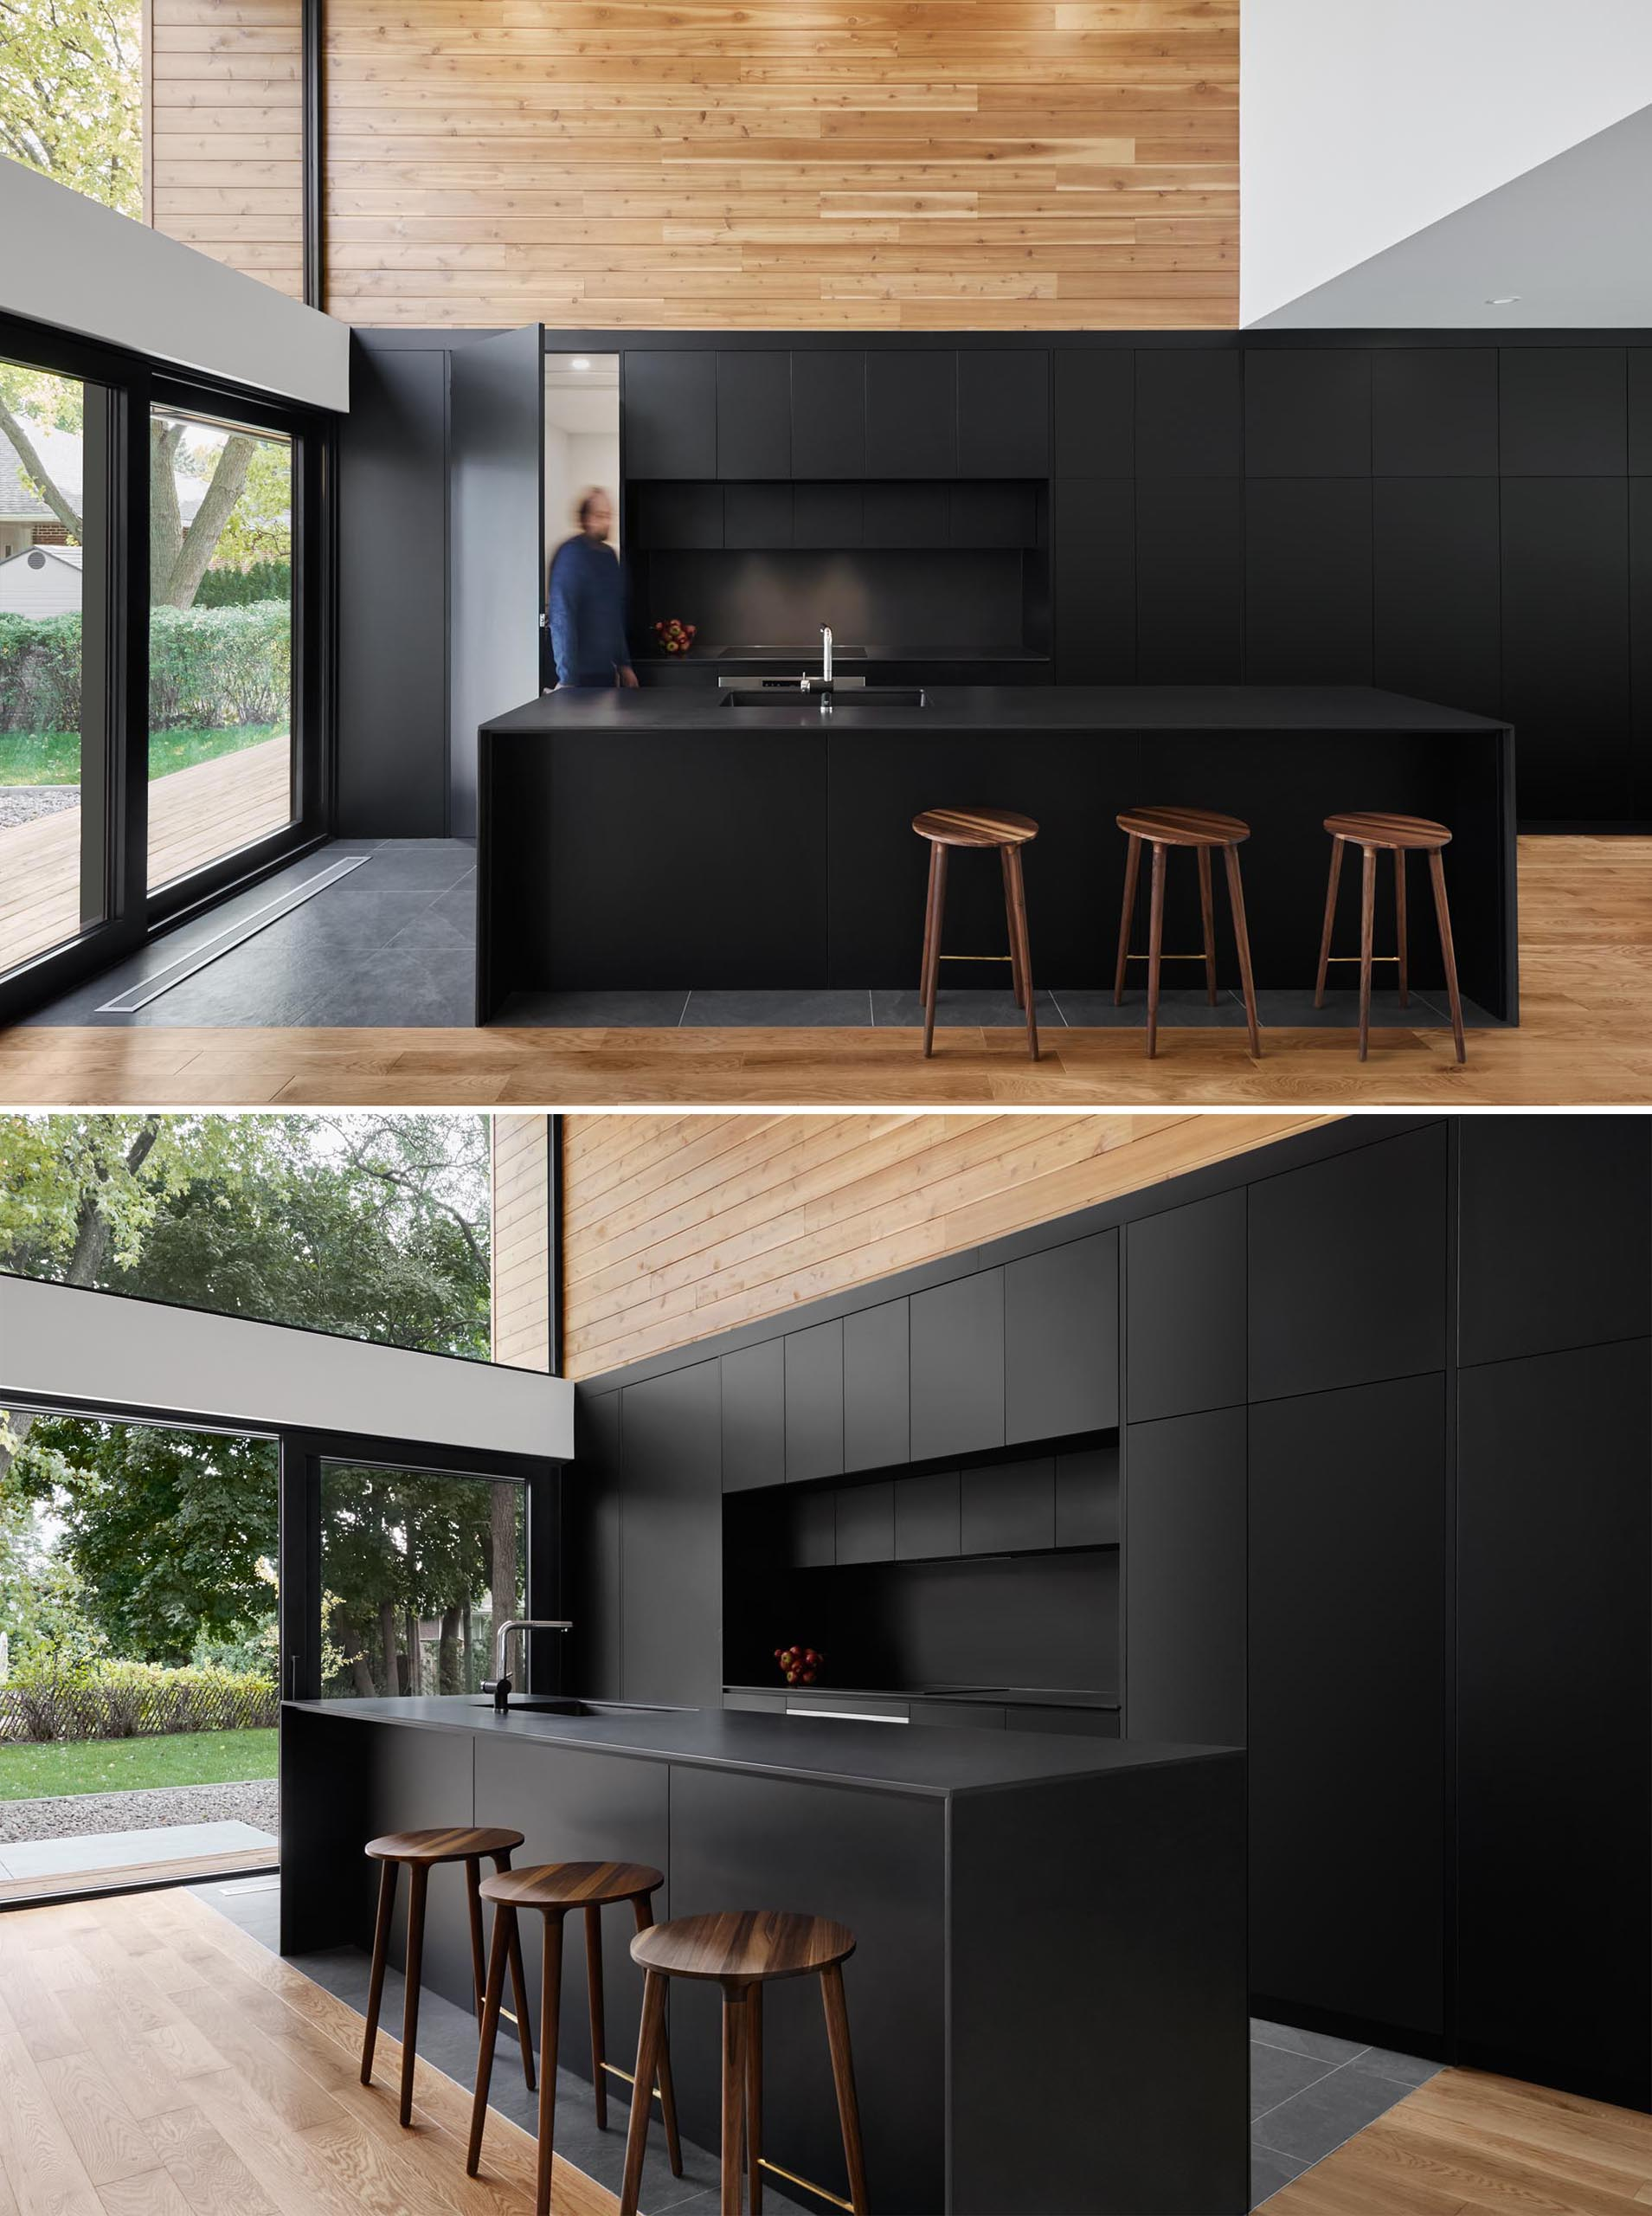 A modern matte black kitchen with integrated appliances and black countertops.